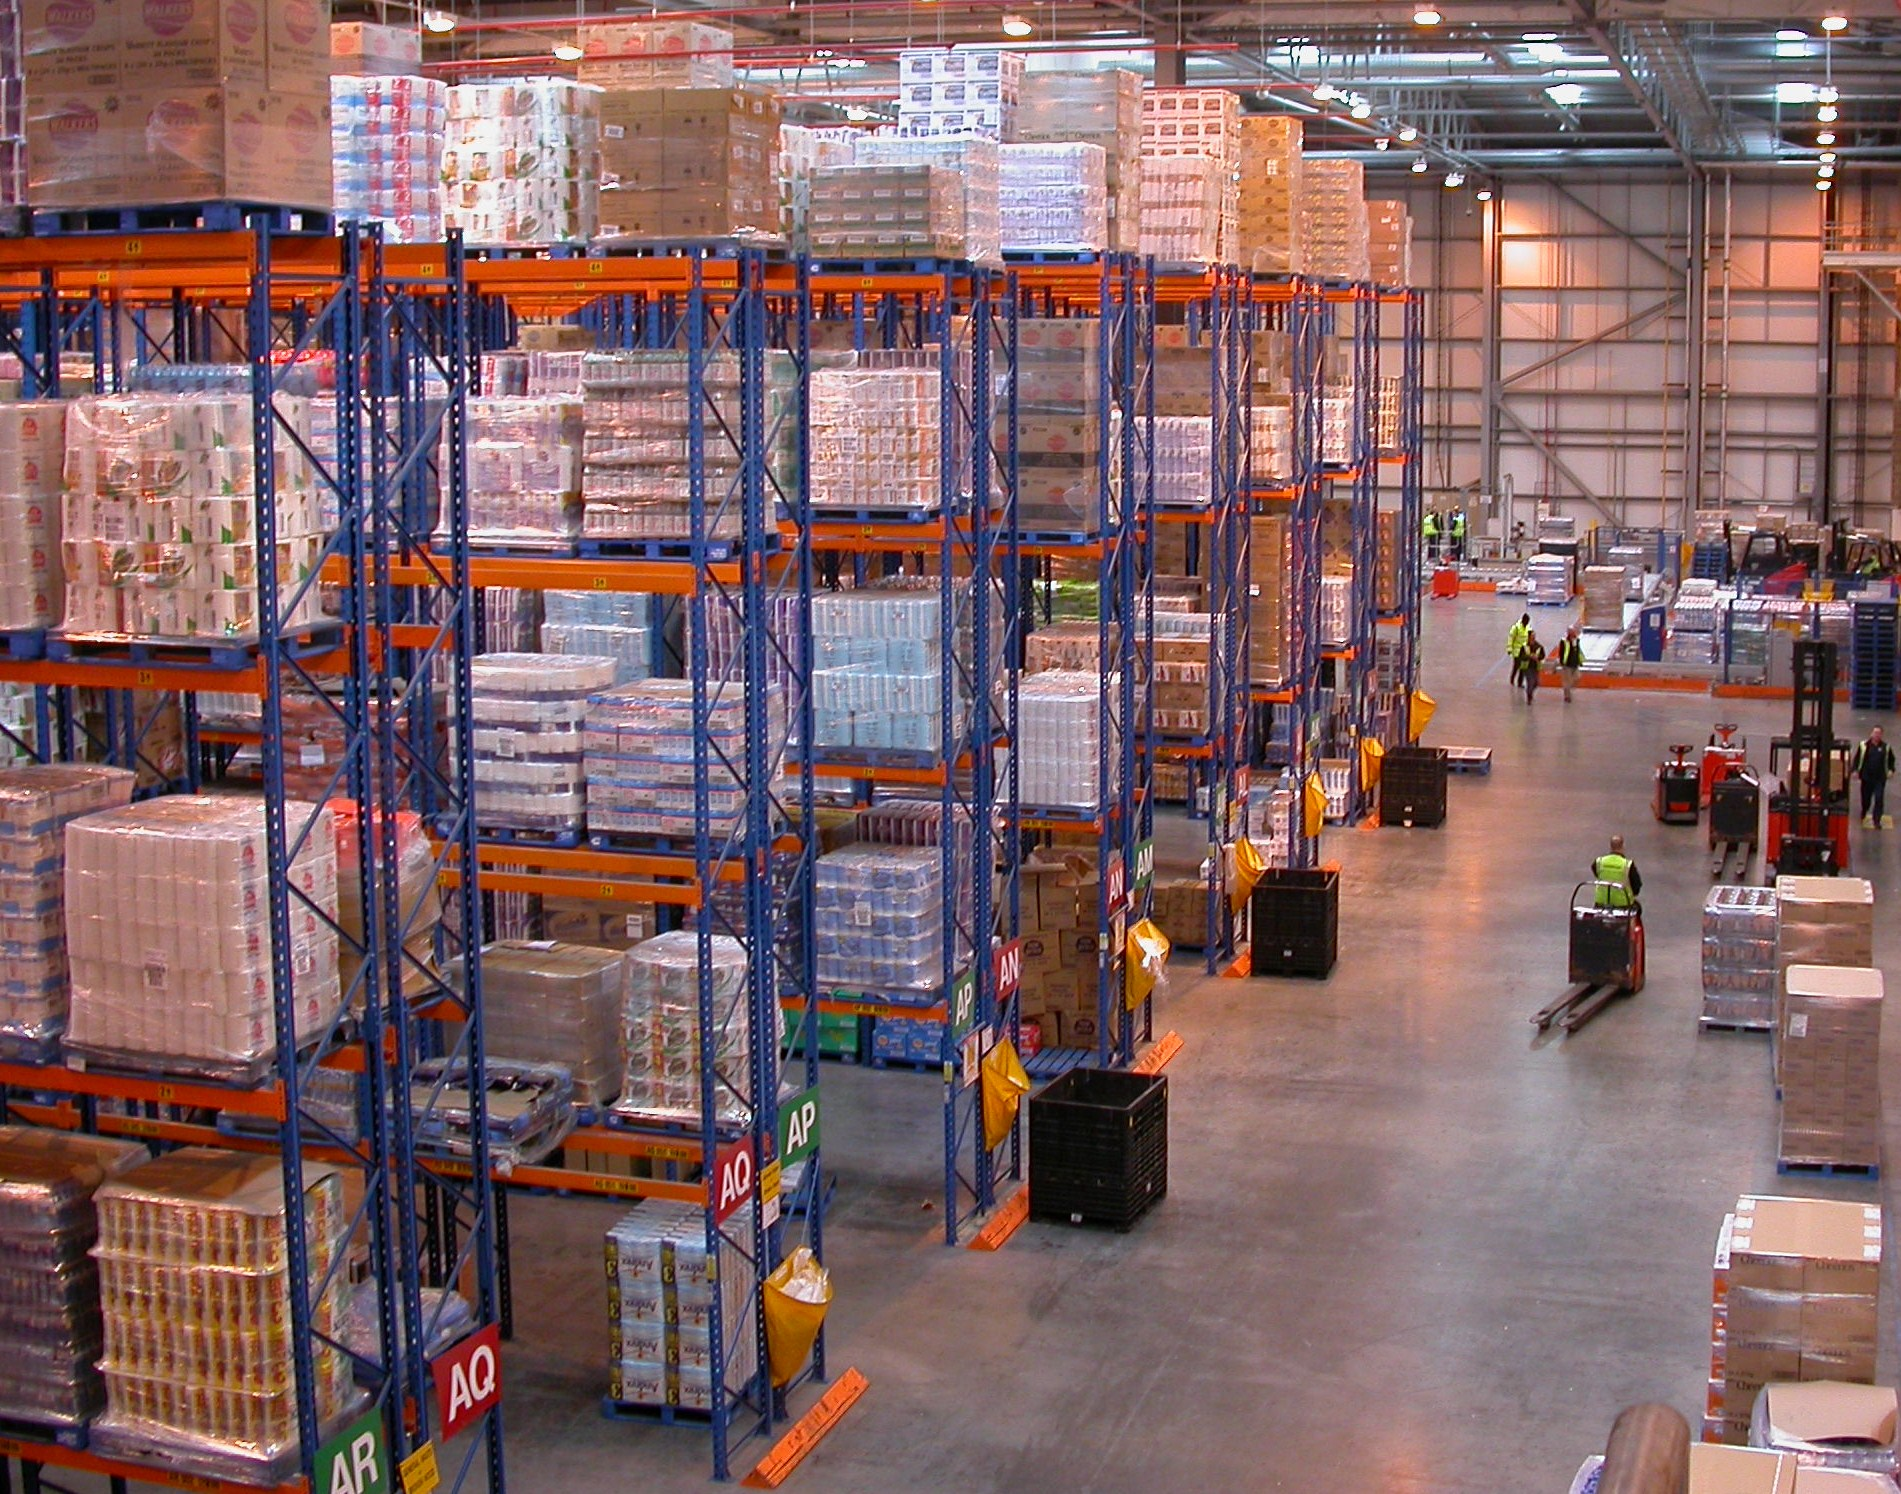 Down the Career Path: Your Next Job Could be in Warehousing